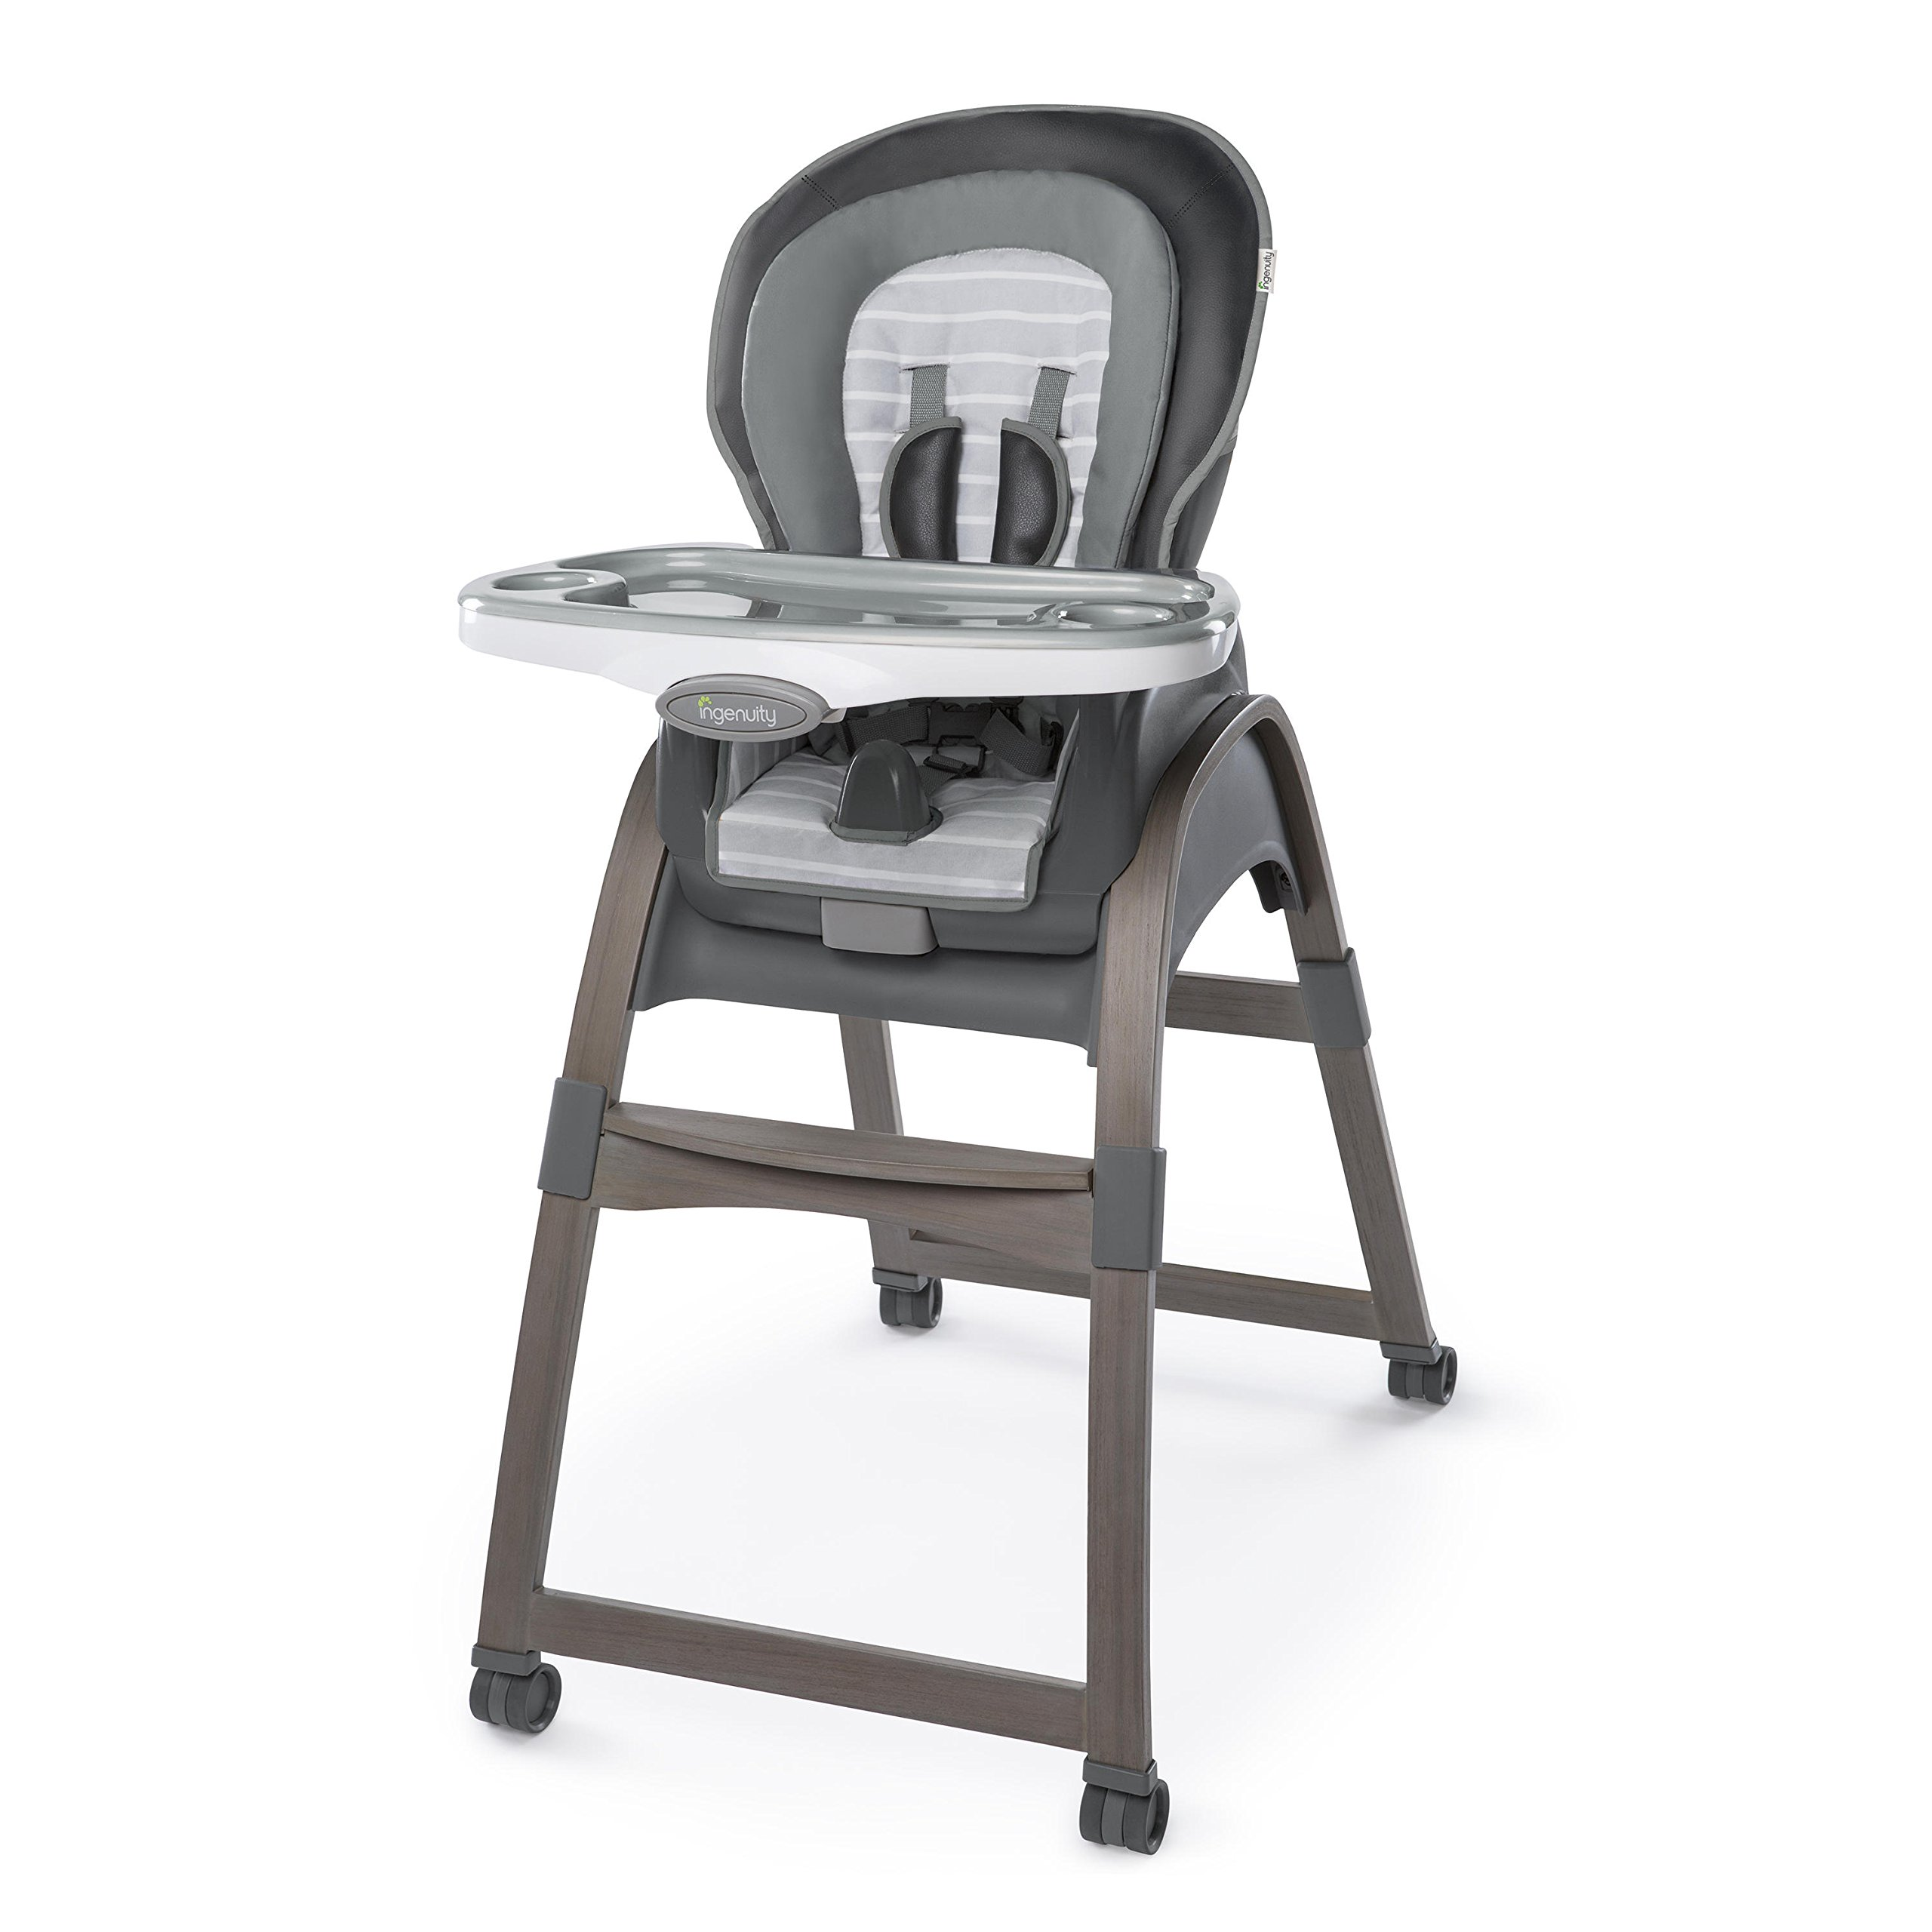 Ingenuity Boutique Collection 3-in-1 Wood High Chair, Bella Teddy